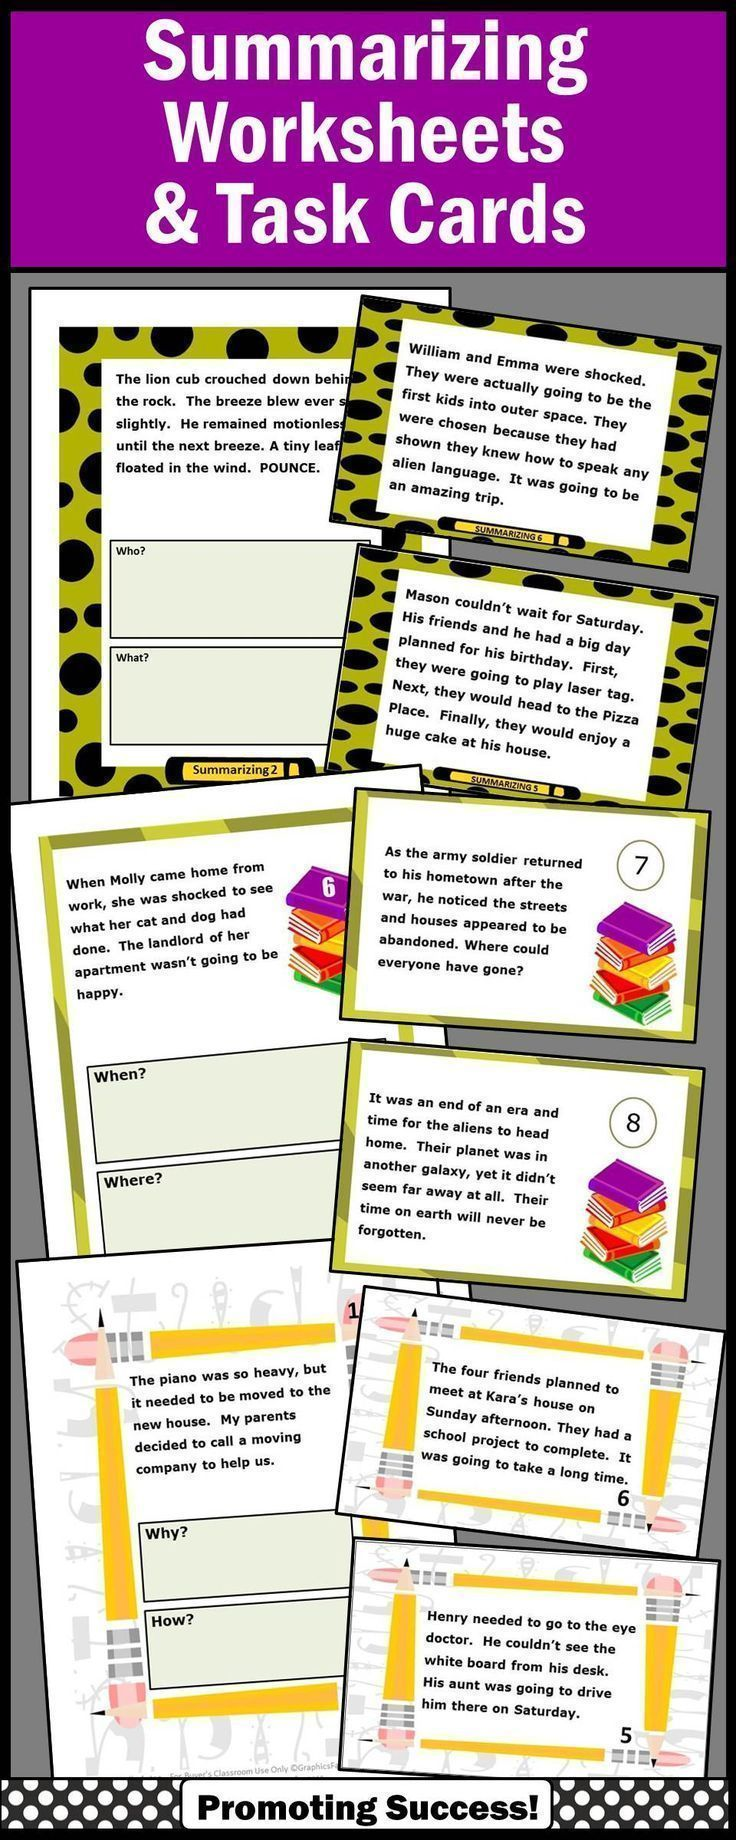 Summarizing Activities For 4th Grade Bundle Wh Questions Worksheets Task Cards Summarizing Activities Summarizing Worksheet Wh Questions Worksheets